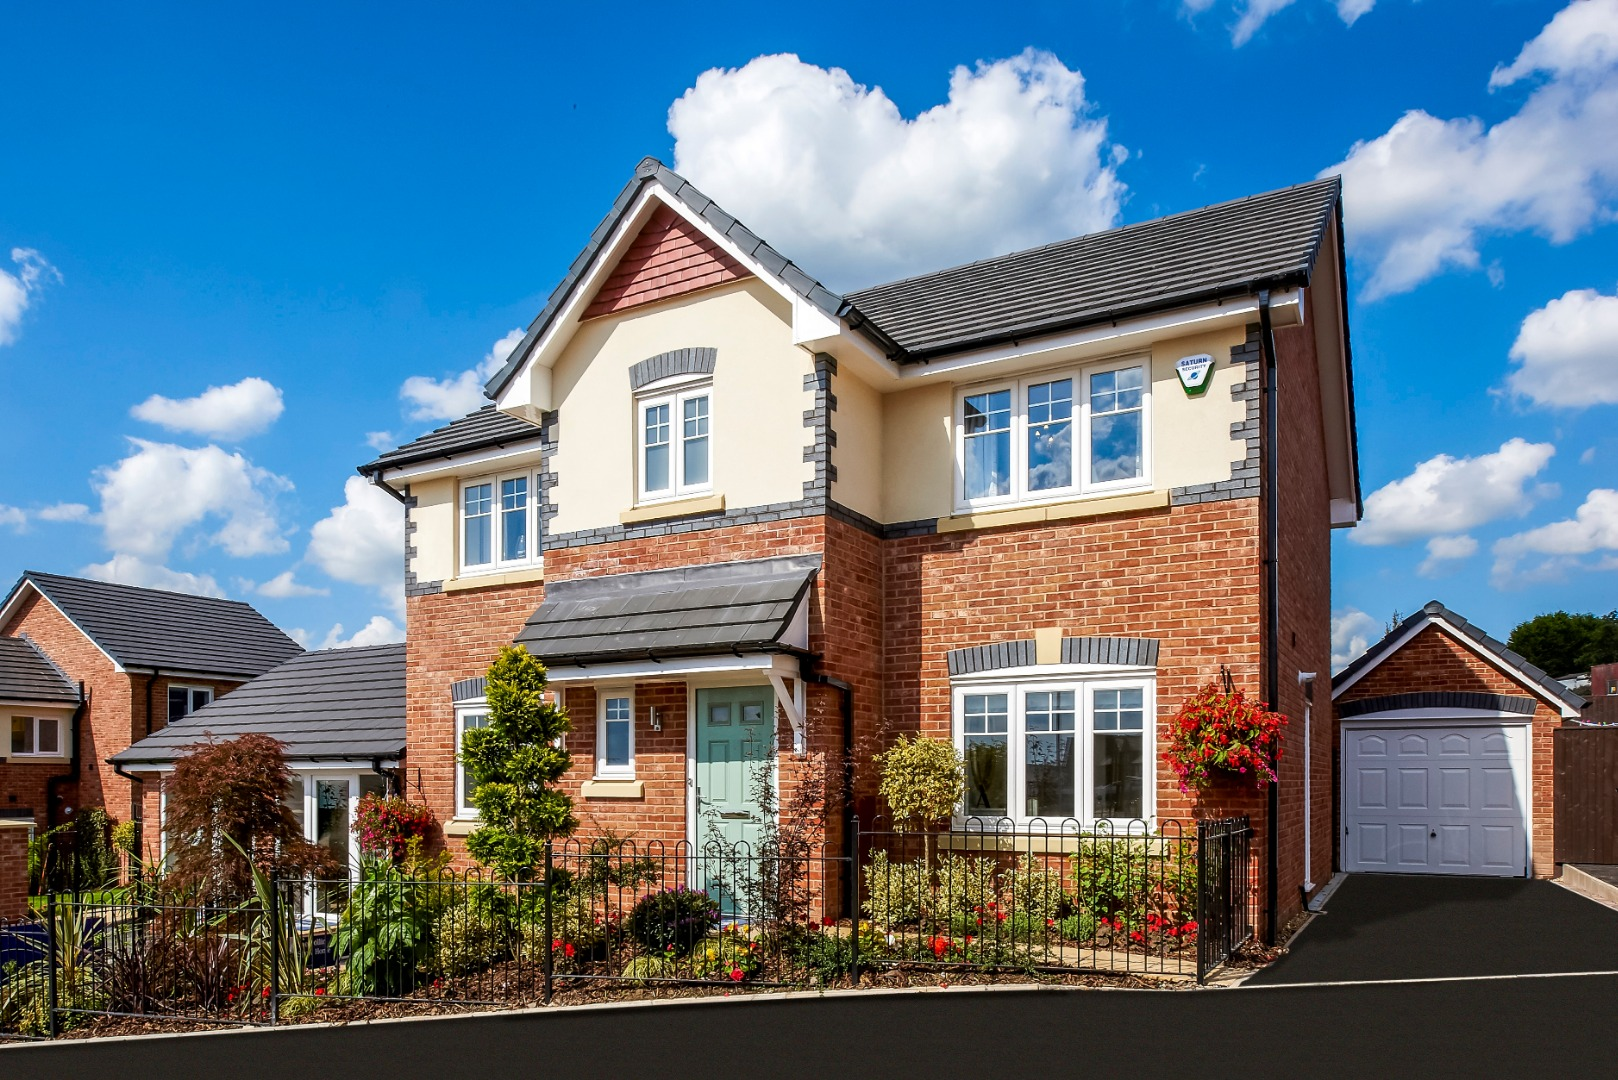 TIME IS RUNNING OUT TO MOVE UP THE PROPERTY LADDER IN BOLTON